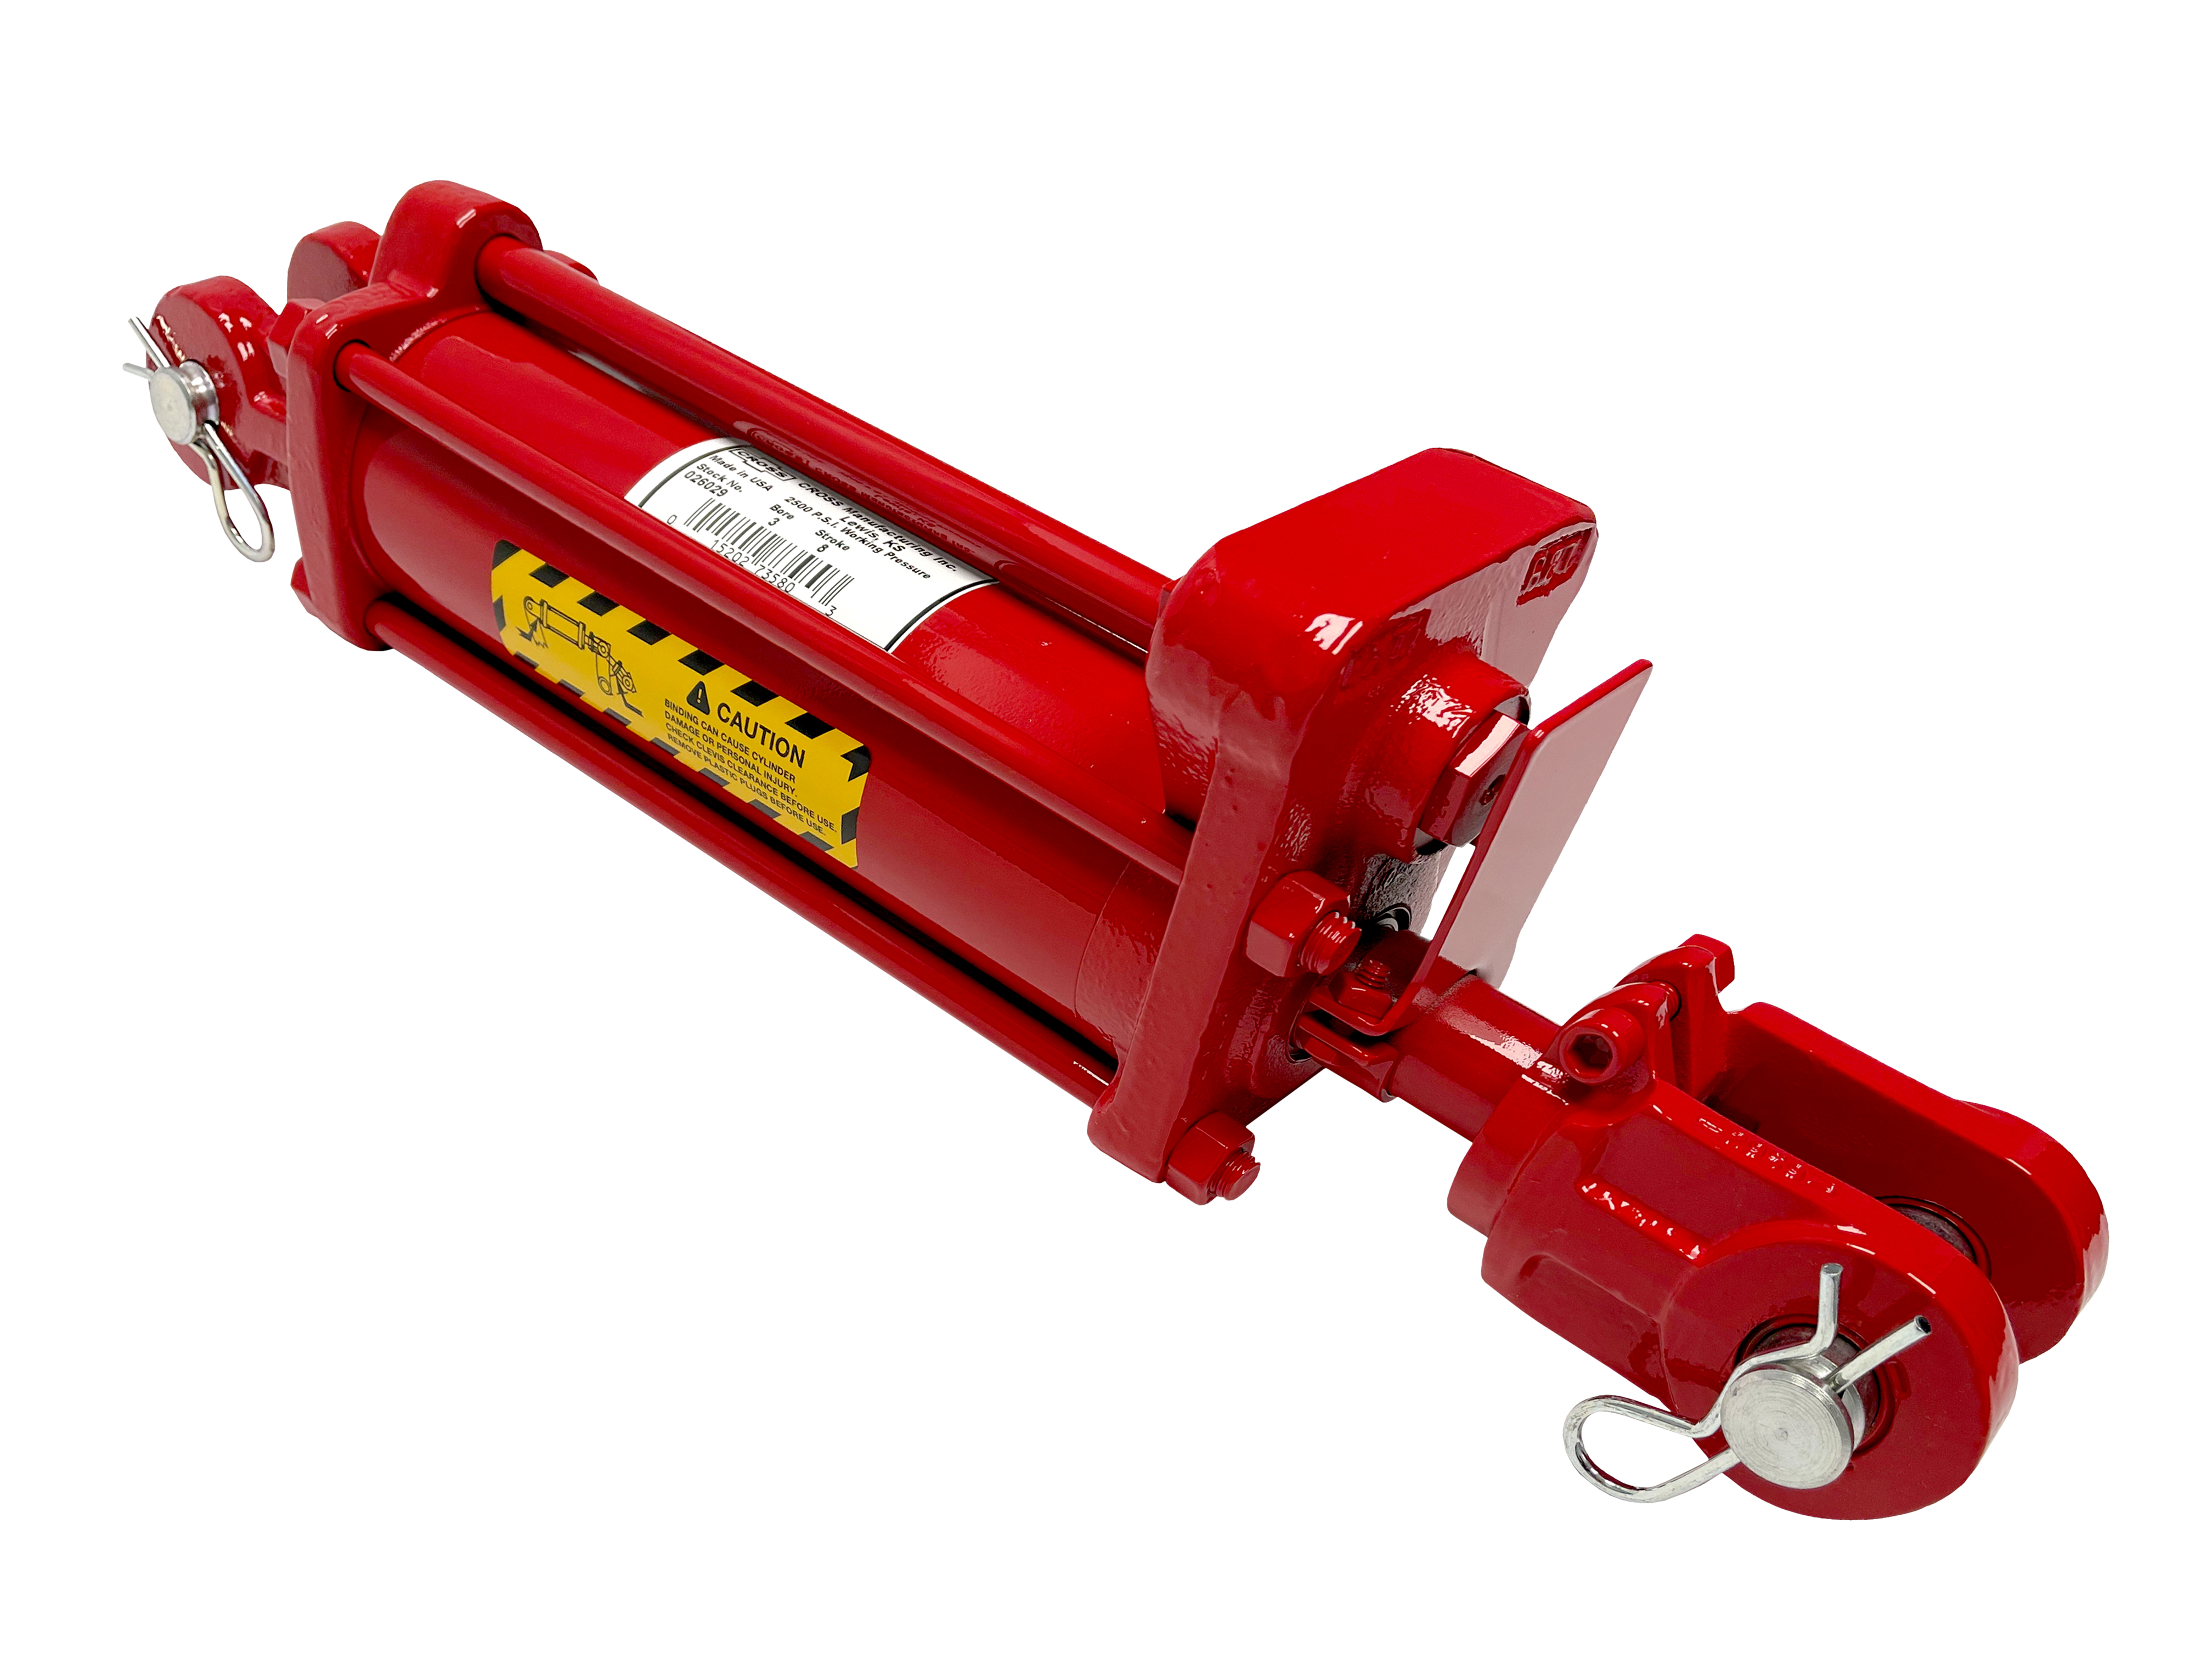 3.5 bore x 8 stroke CROSS hydraulic cylinder with depth control, tie rod double acting cylinder DC series | CROSS MANUFACTURING